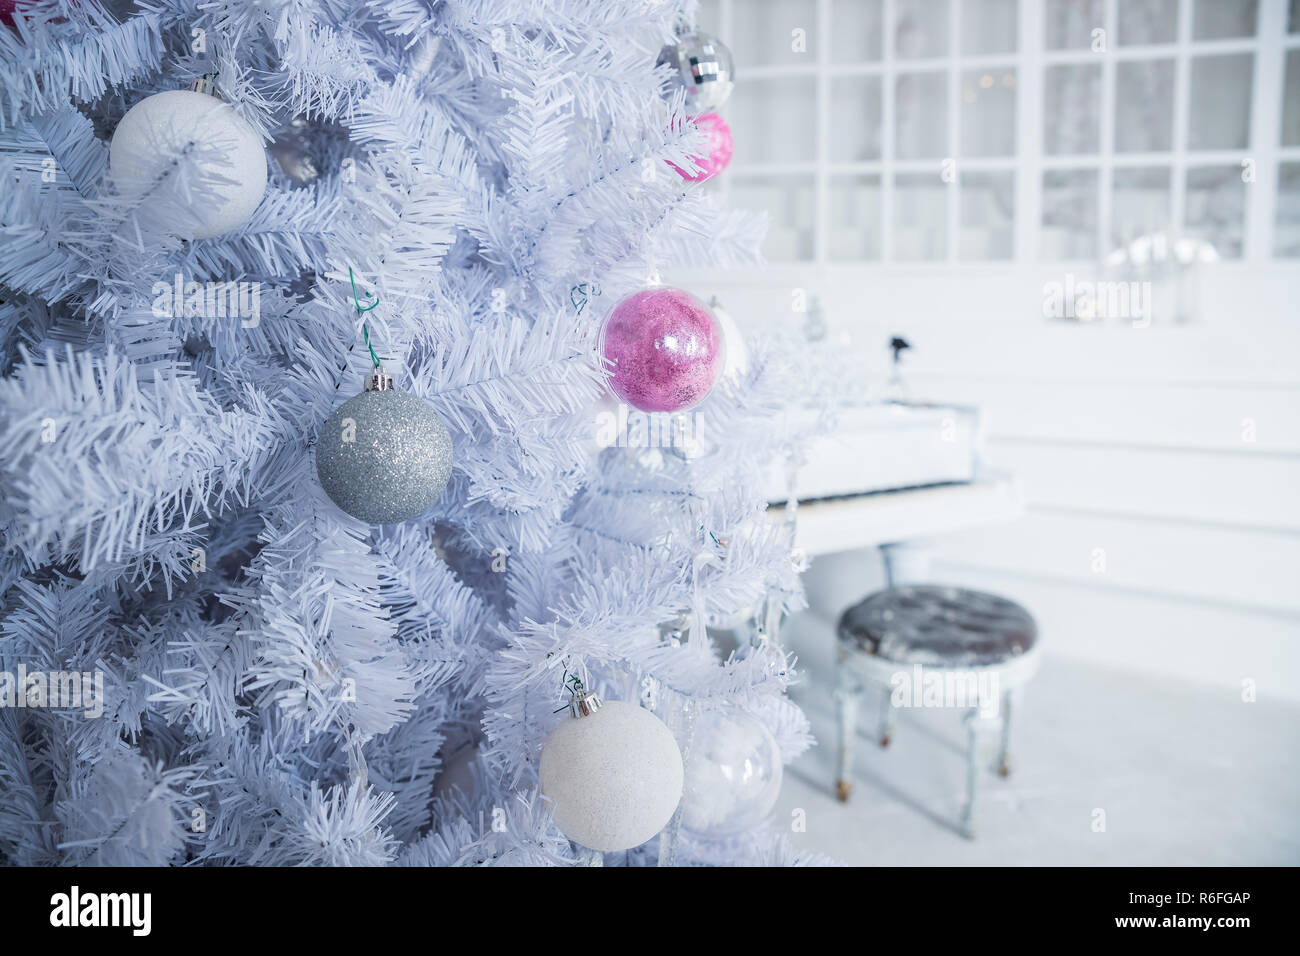 White Christmas Tree Decorated With Silver And Pink Ornaments At The Piano Background Winter Scene New Year Decoration Xmas Interior Design Includes Decorated Christmas Tree Selective Focus Classical White Hall Stock Photo Alamy